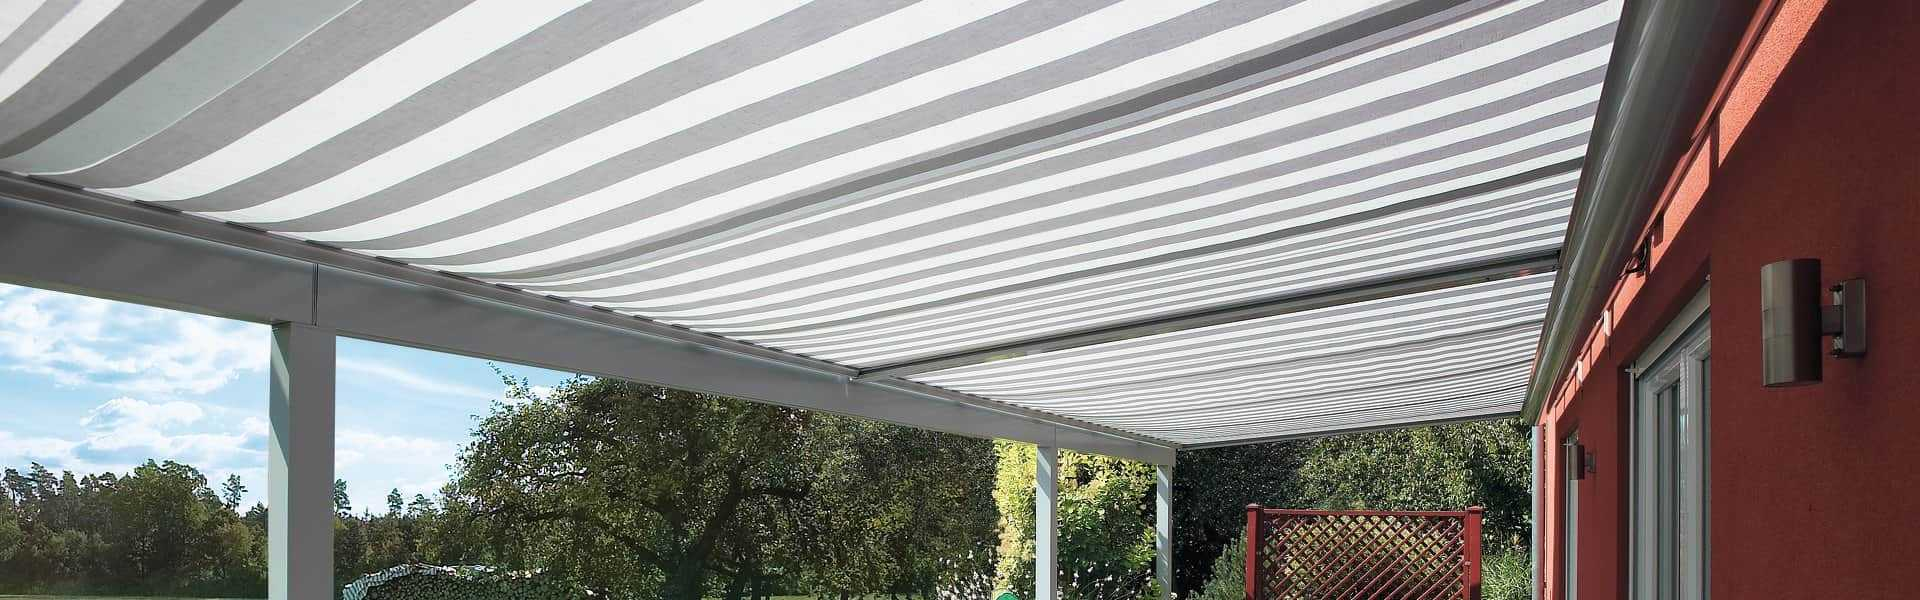 Roof or conservatory blind